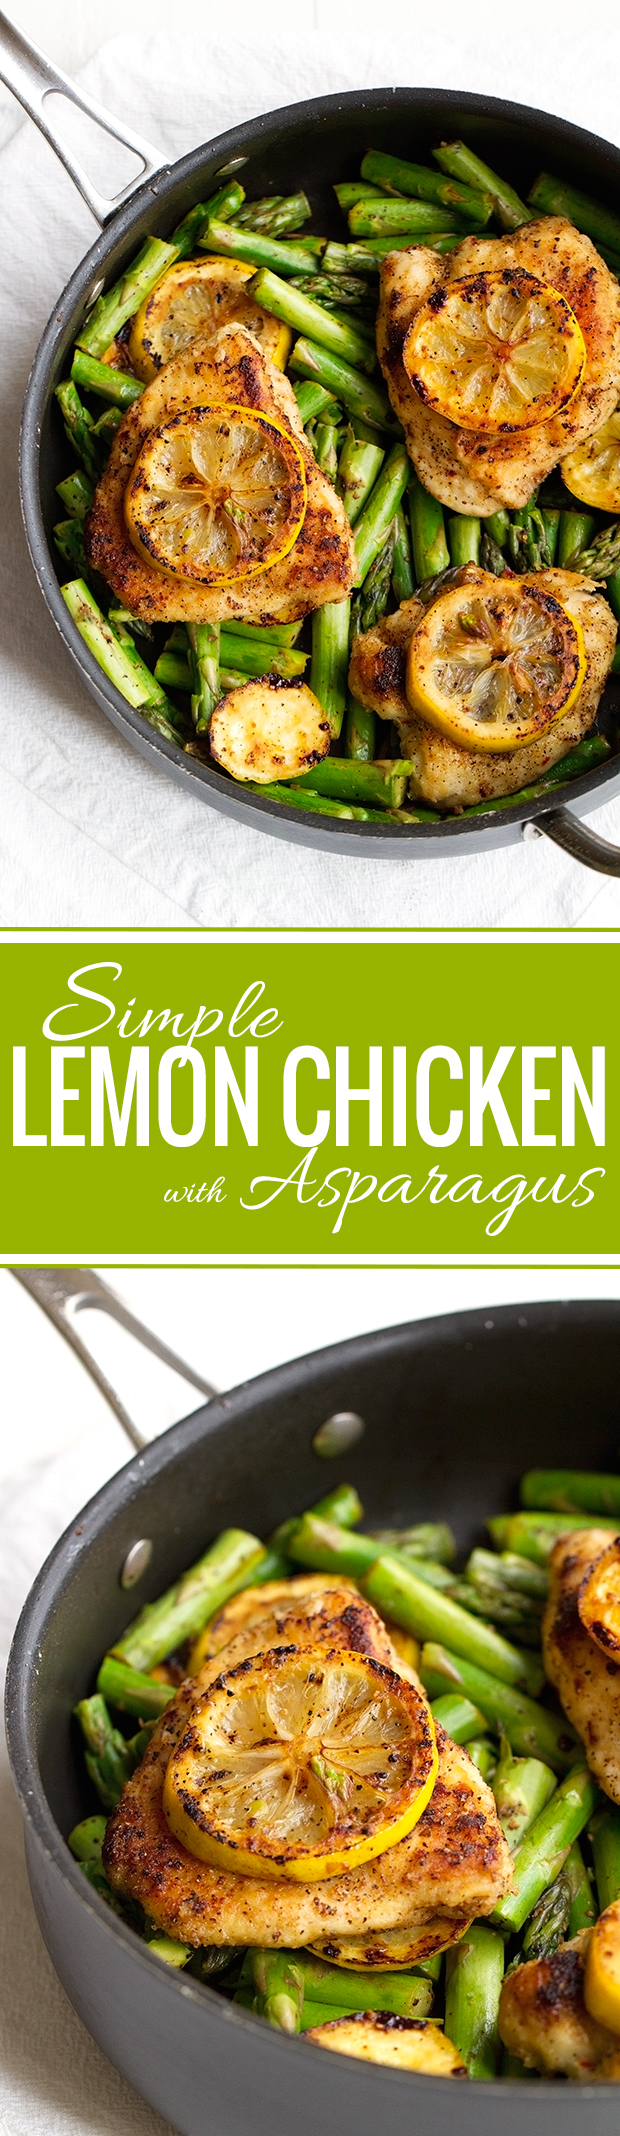 Simple Lemon Chicken with Asparagus - This recipe takes just 25 minutes and less than 10 ingredients! #chicken #lemonchicken #asparagus   Littlespicejar.com